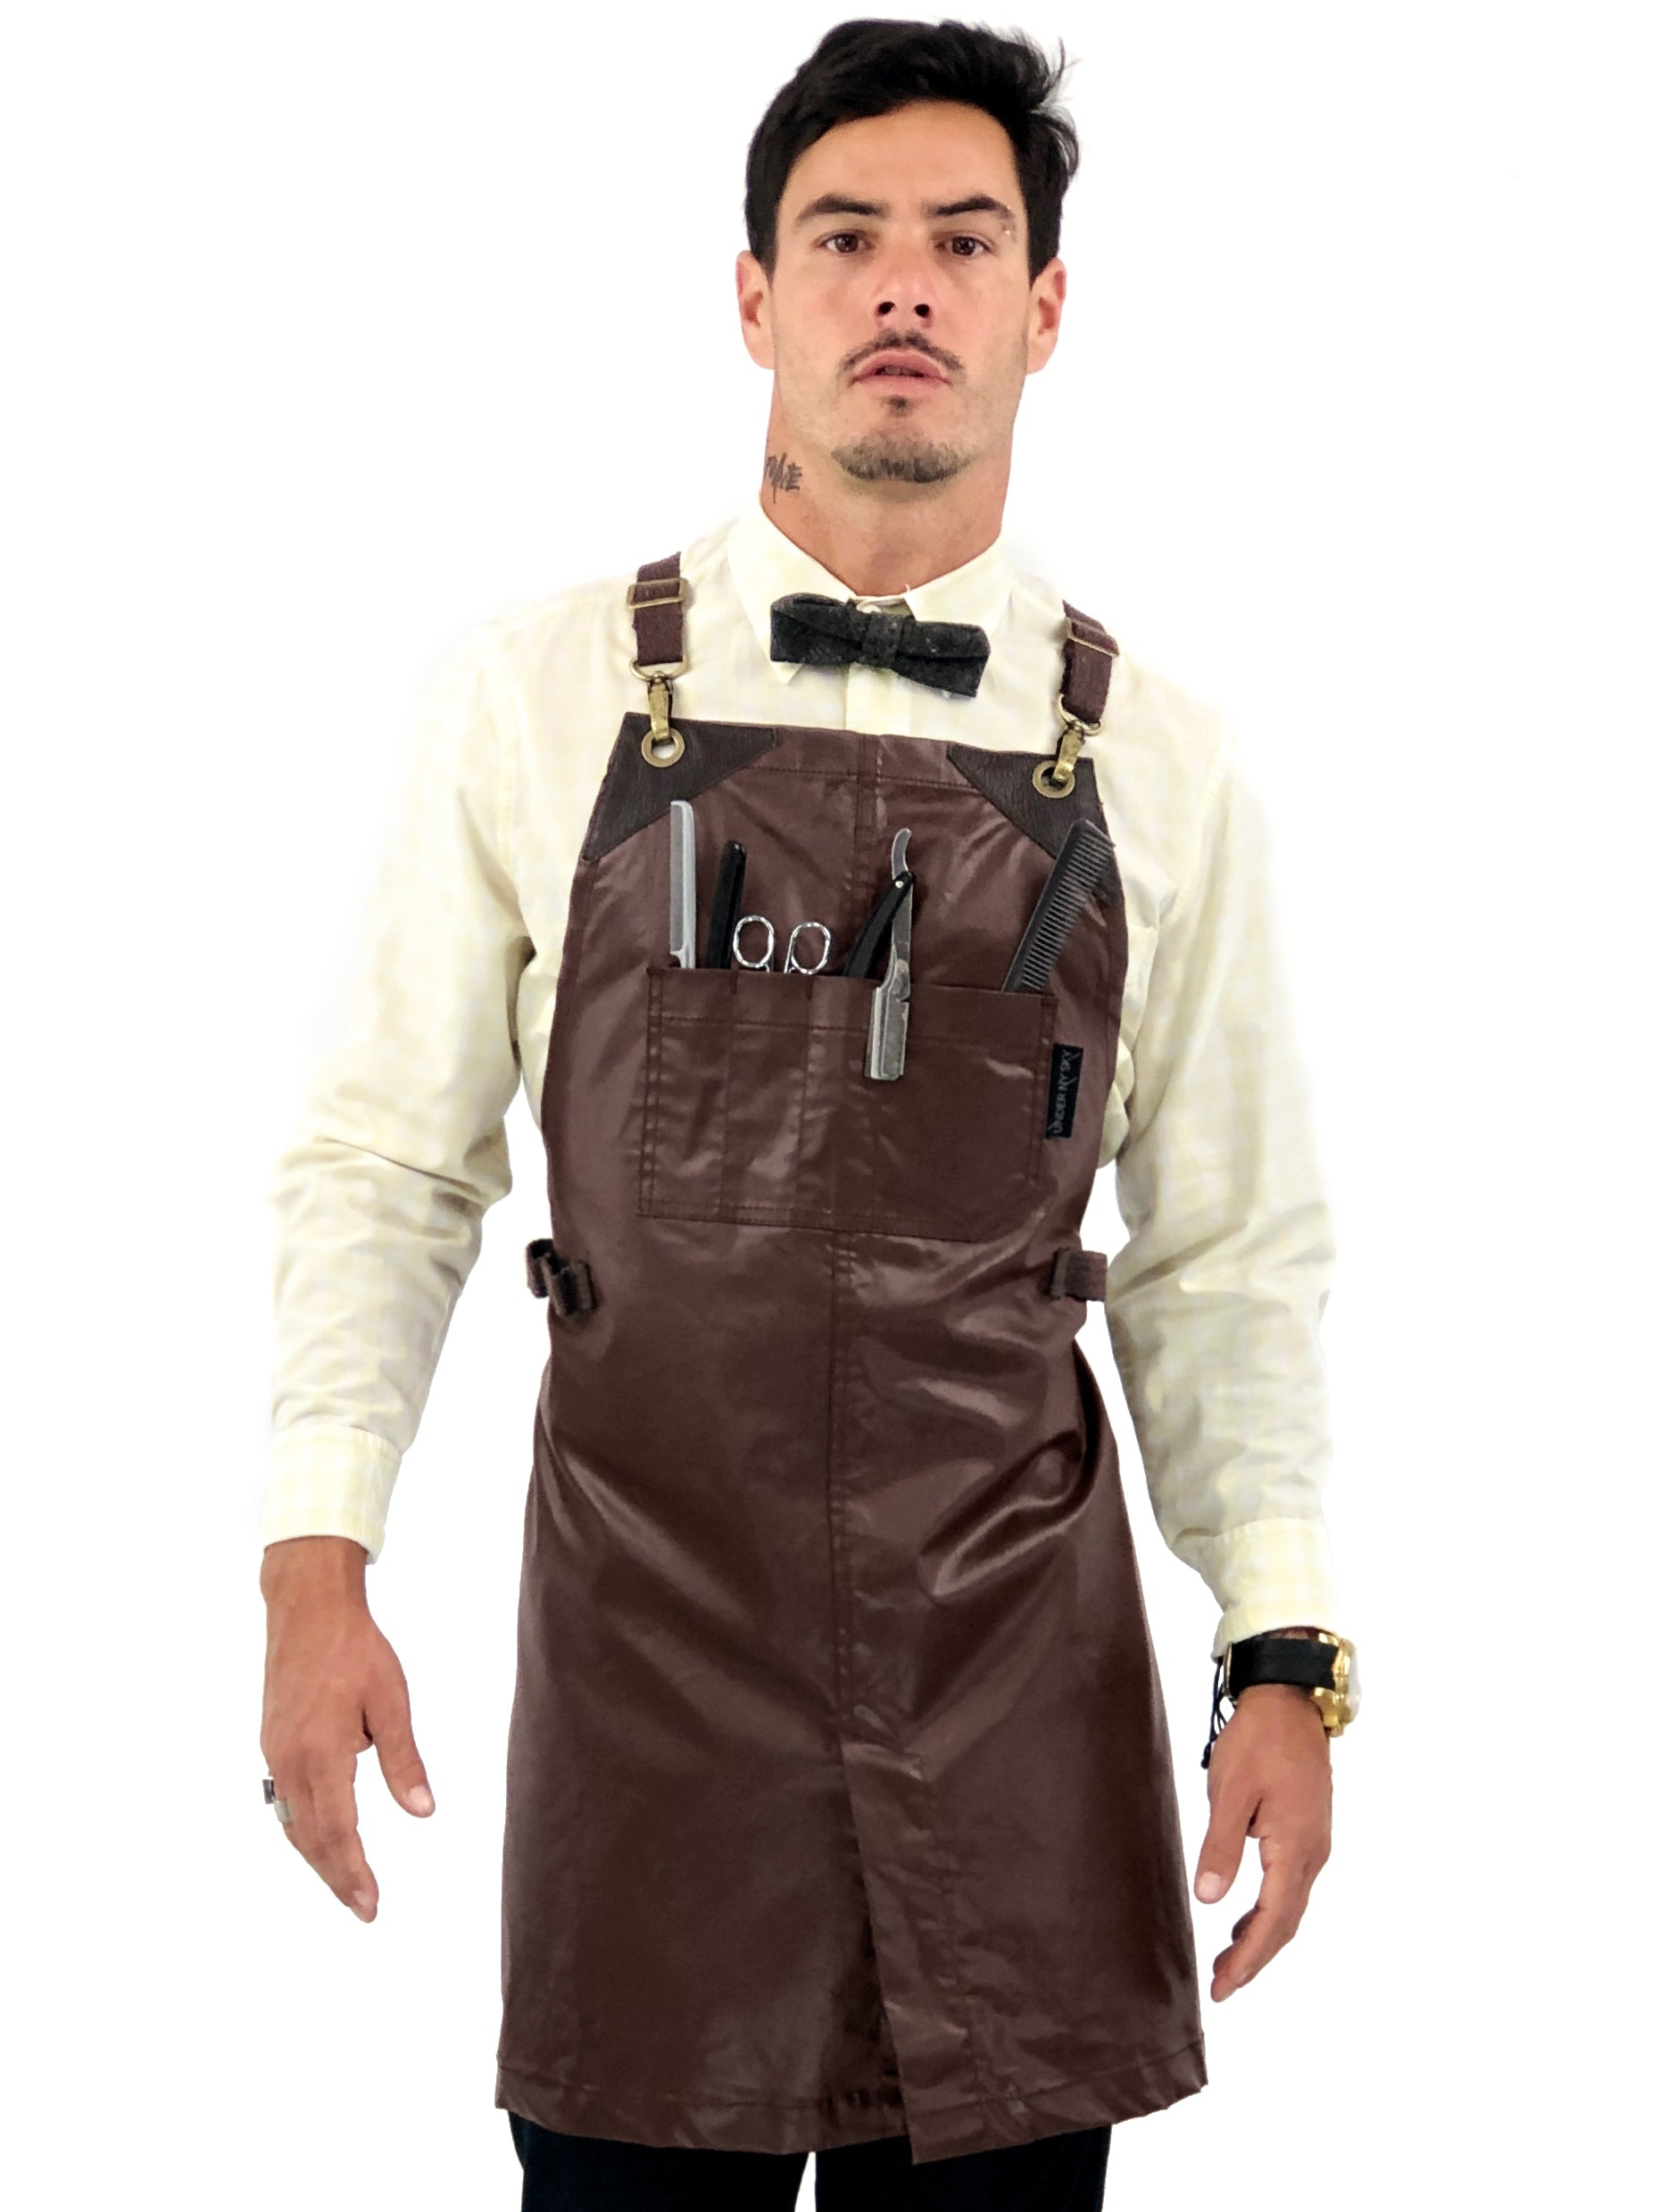 Barber Apron - Brown Water Resistant Coated Twill - Small Size